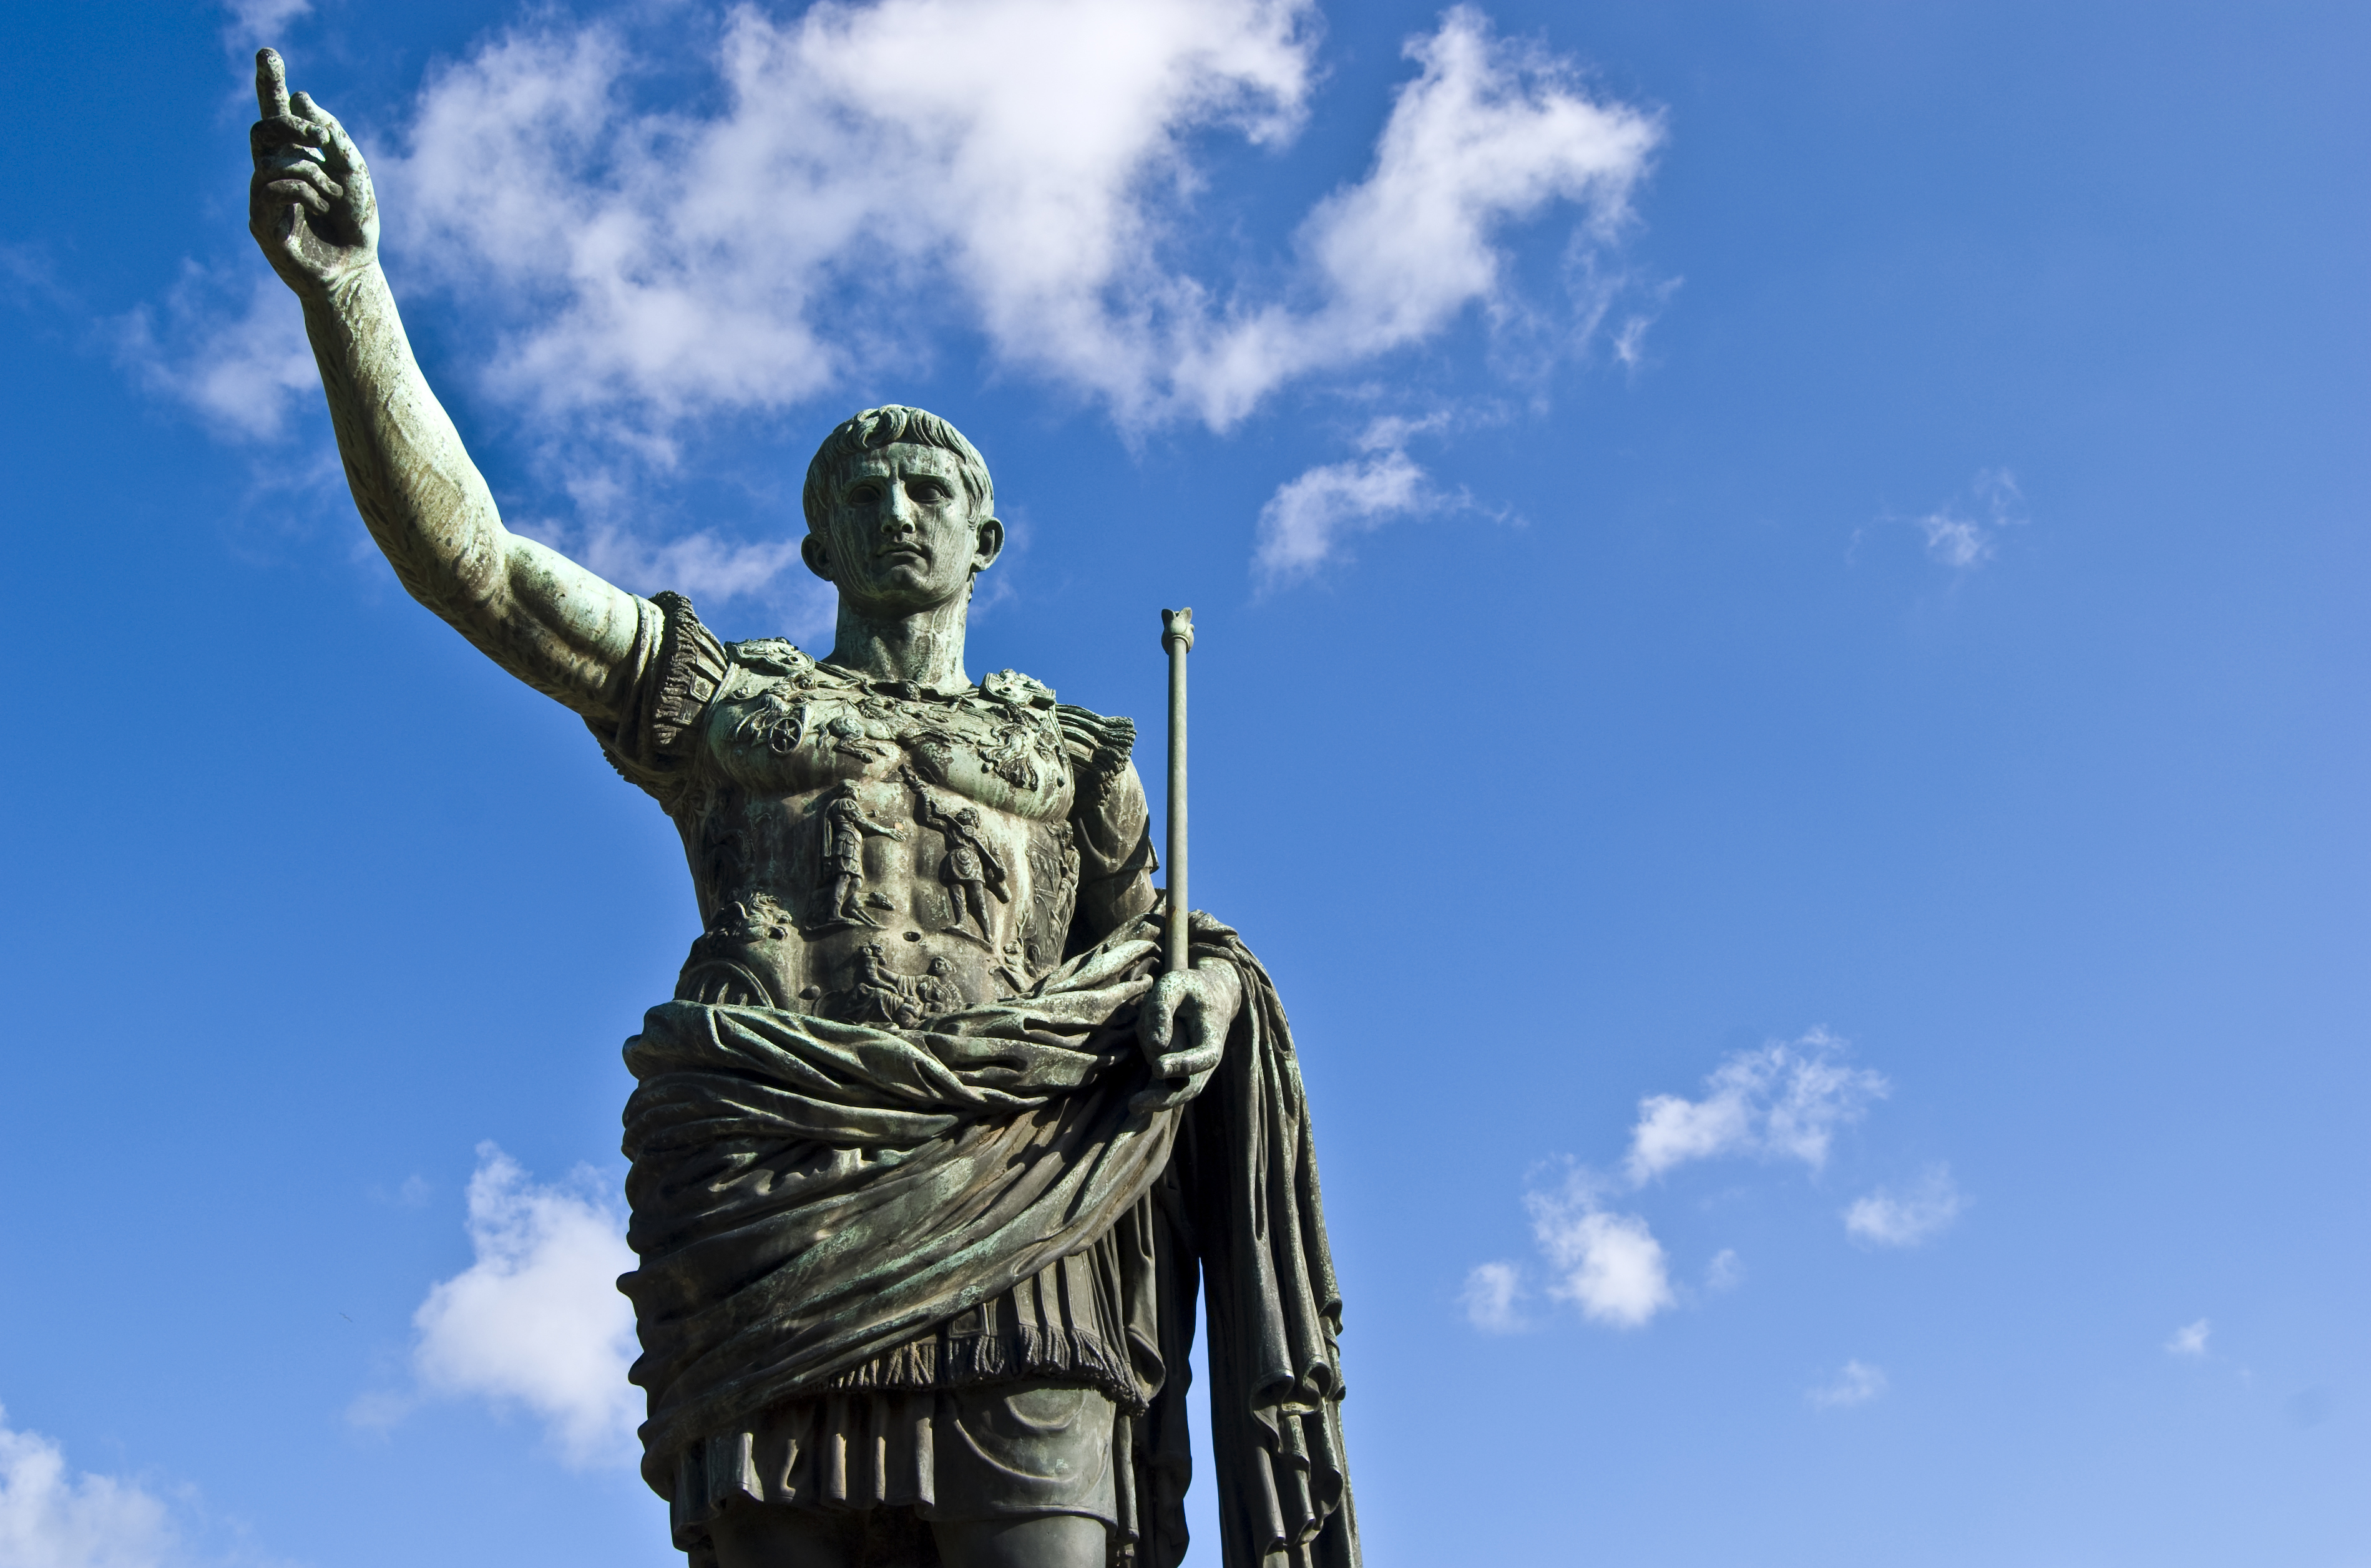 julius caesar essay questions julius caesar in julius caesar  julius caesar ancient com 5 things you might not know about julius caesar essay julius caesar essay questions